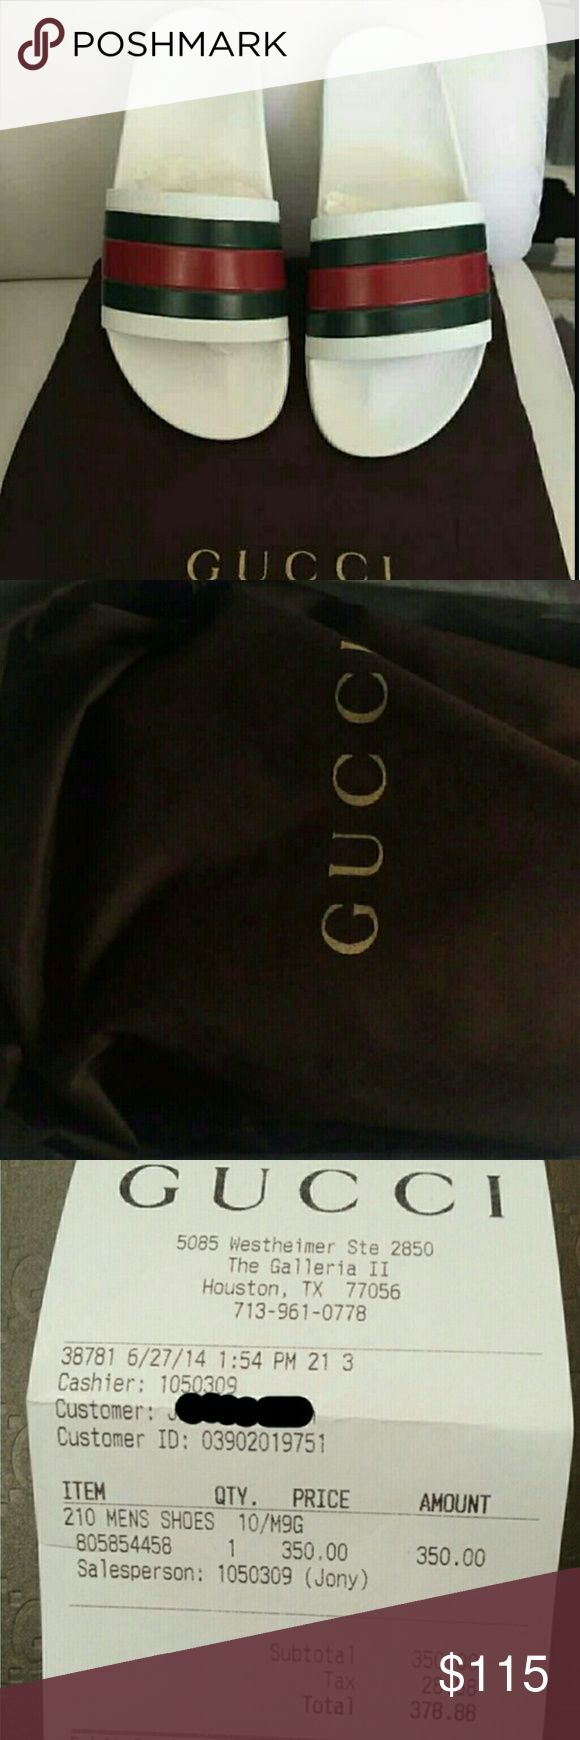 Authentic Gucci flip flops New authentic multiple sizes hmu for info, pics, and price offers (803 599 8710) Gucci Shoes Sandals & Flip-Flops